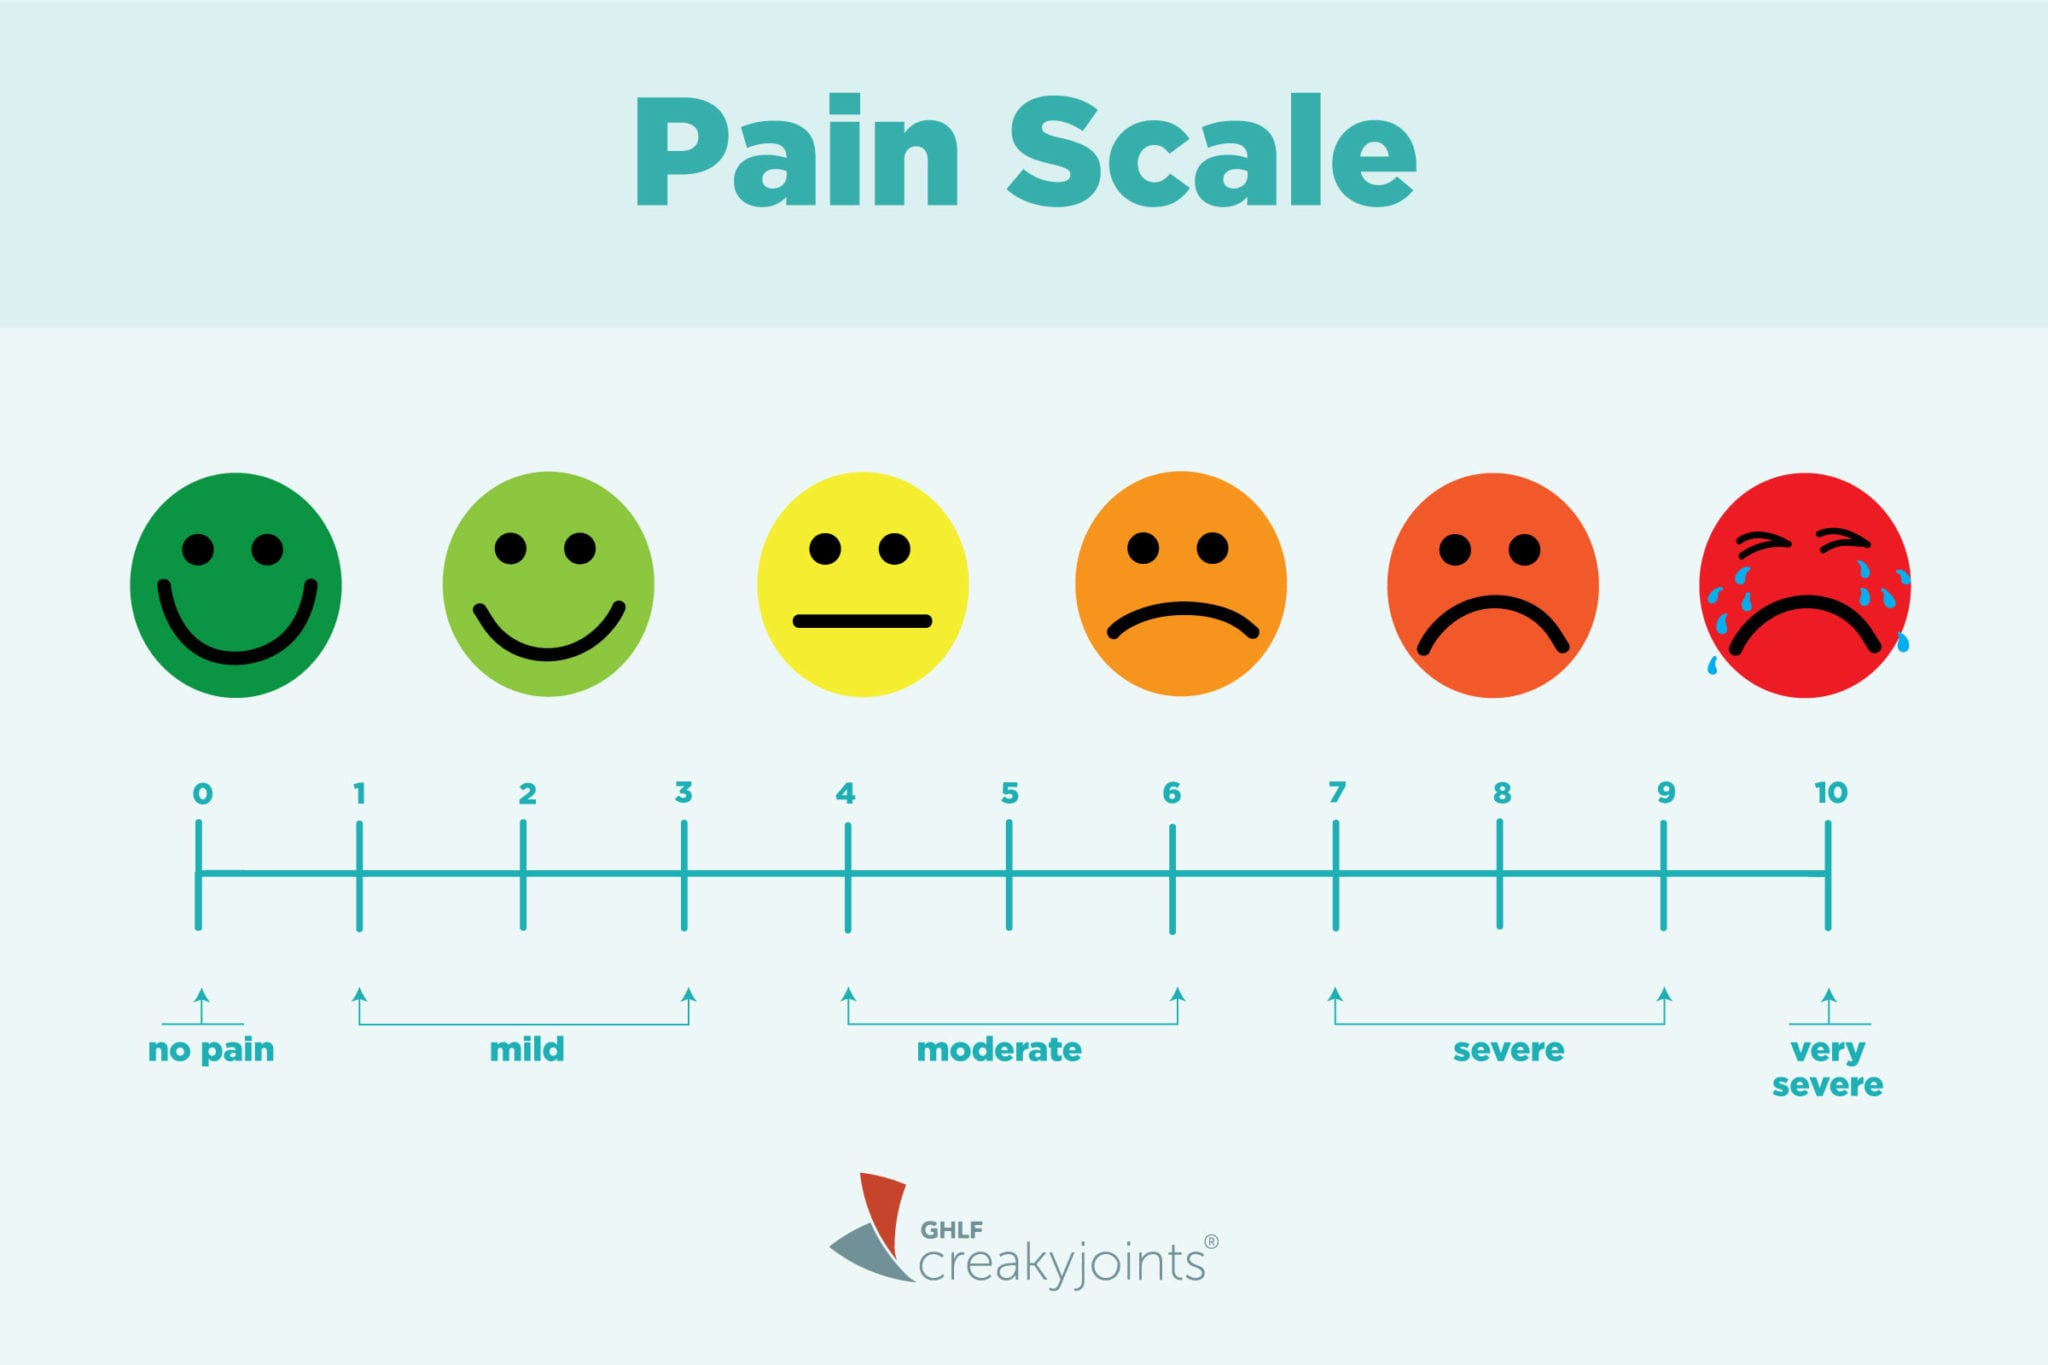 graphic relating to Pain Scale Chart Printable identify Conveying Your Suffering With a 0-10 Discomfort Scale May well Be Messing